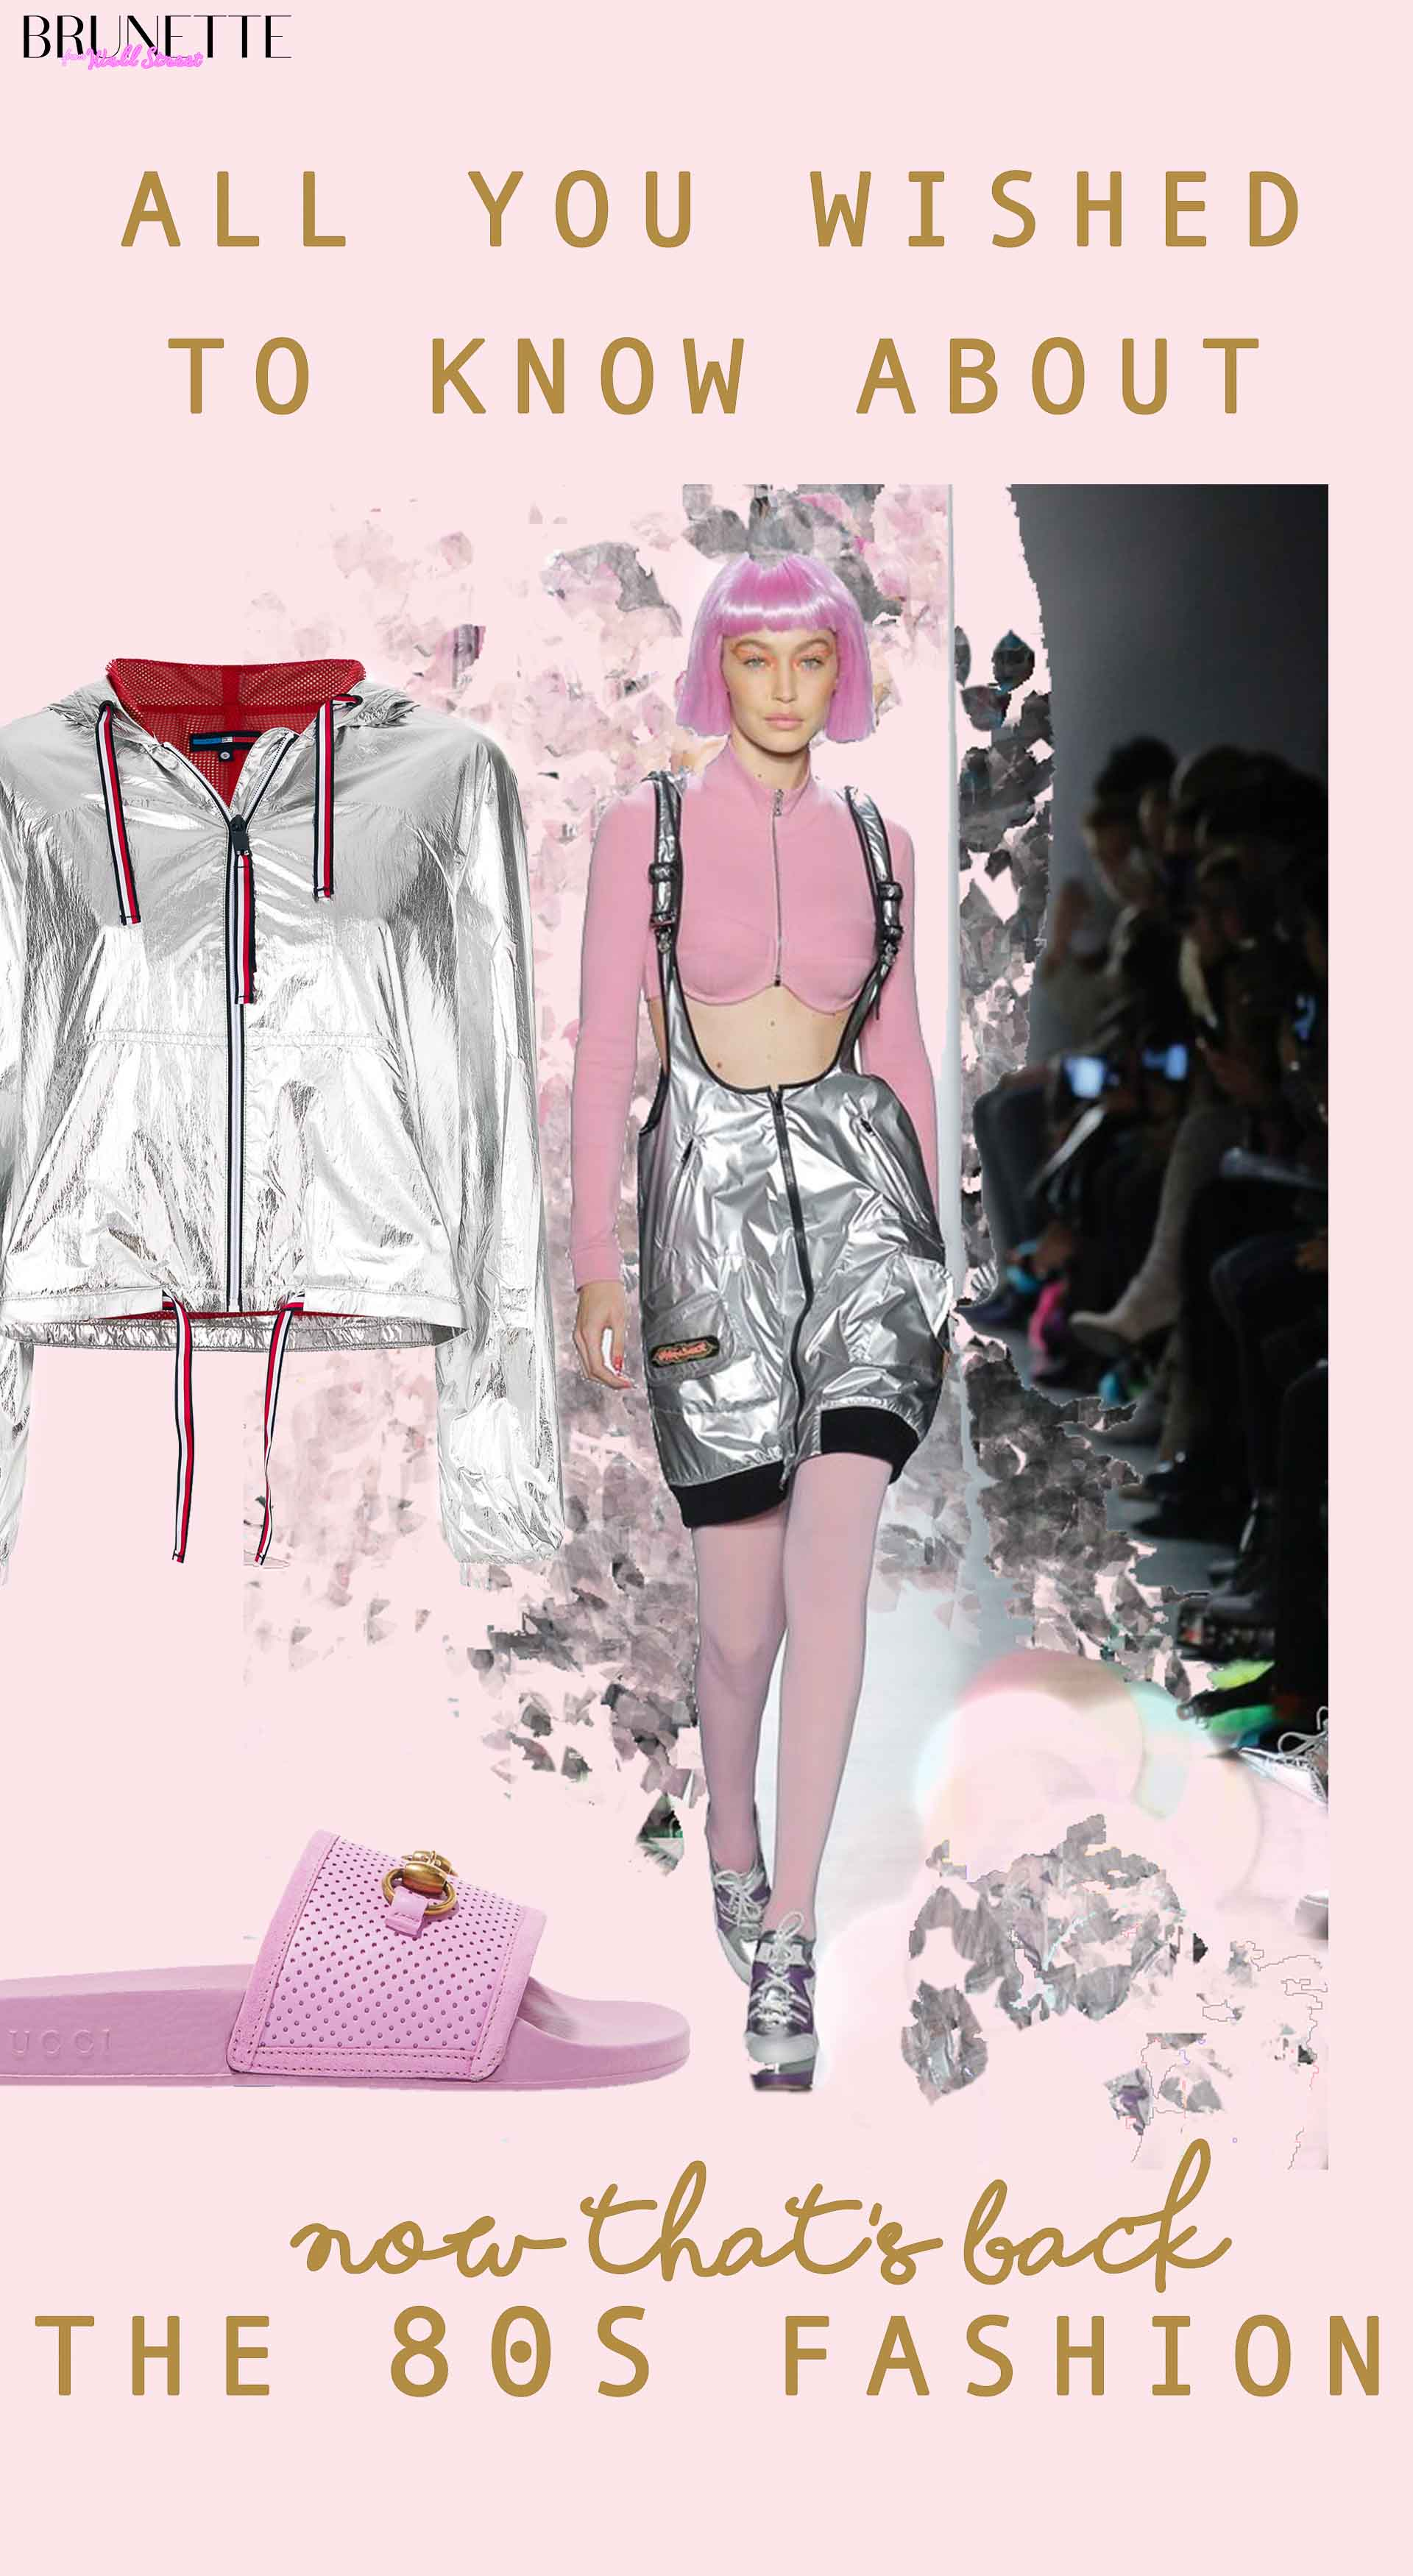 Pink Gucci pool slides, silver hood jacket, runway look with text overlay All you wished to know about the 80s fashion now that's back